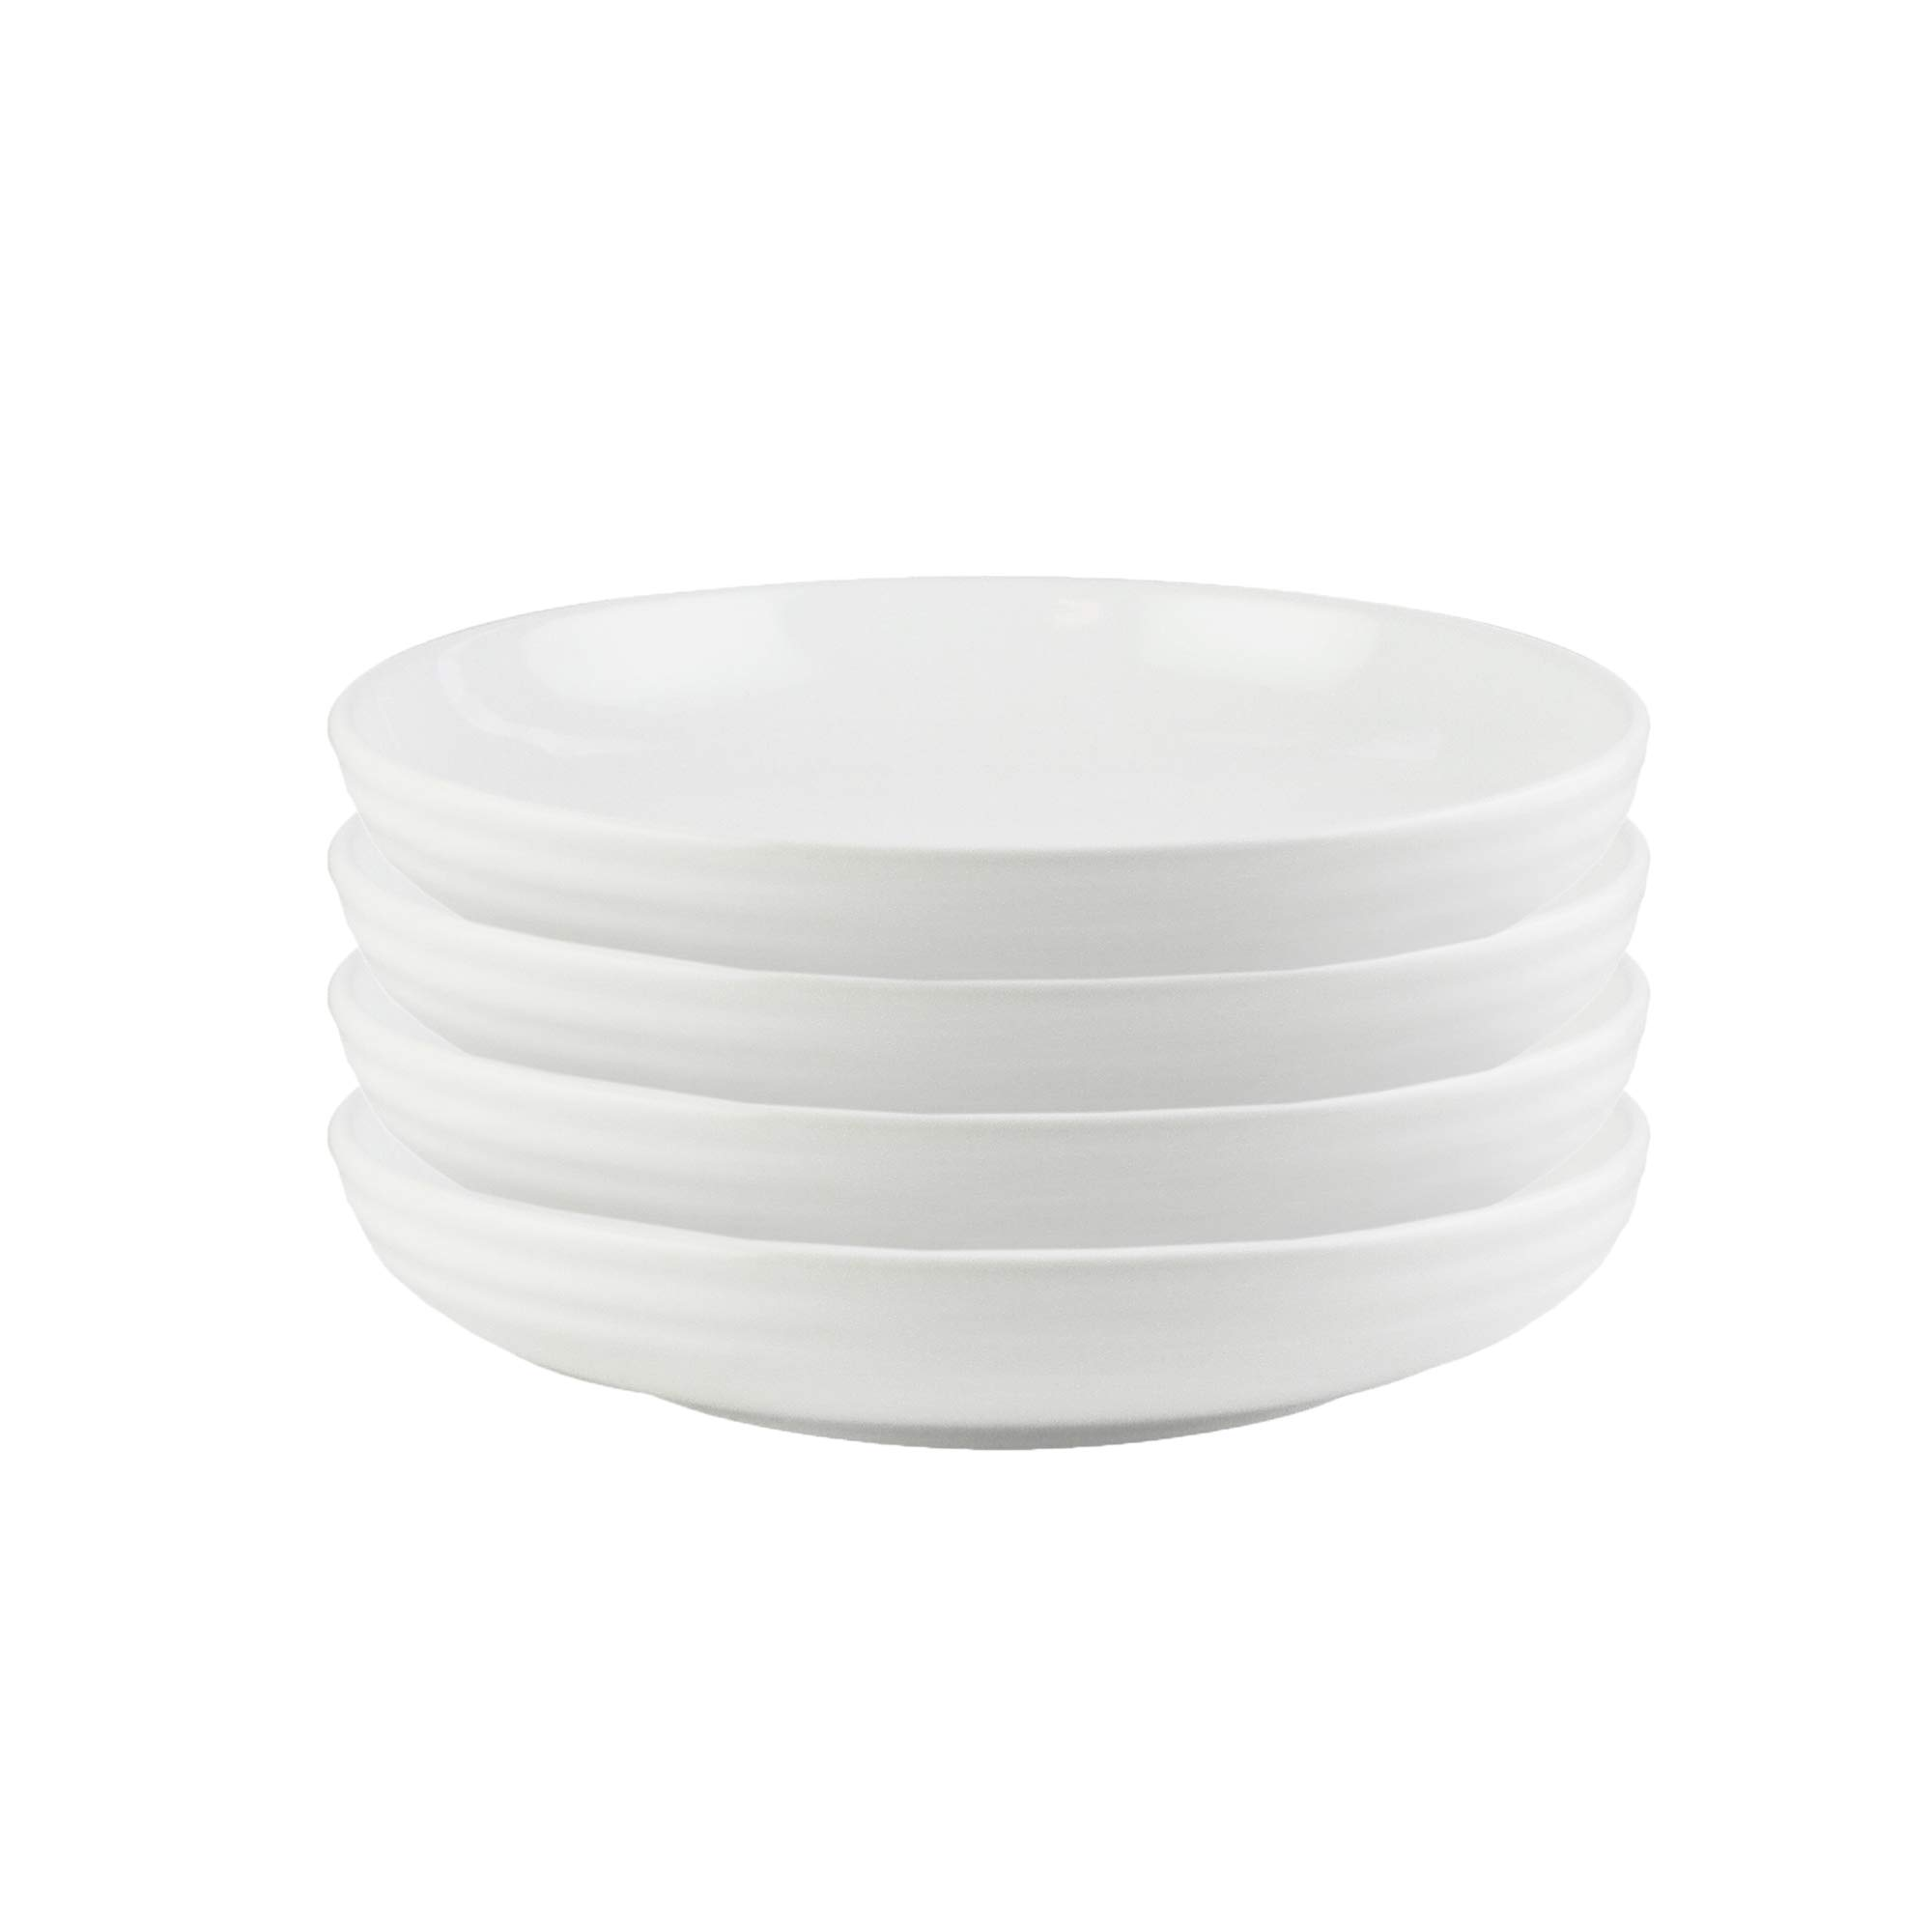 American Atelier Pasta Bowls White Earthenware Finish 8.5 Inch Set of 4 - Dishwasher & Microwave Safe Great Kitchen Home Use for Serving Soup Salad & More